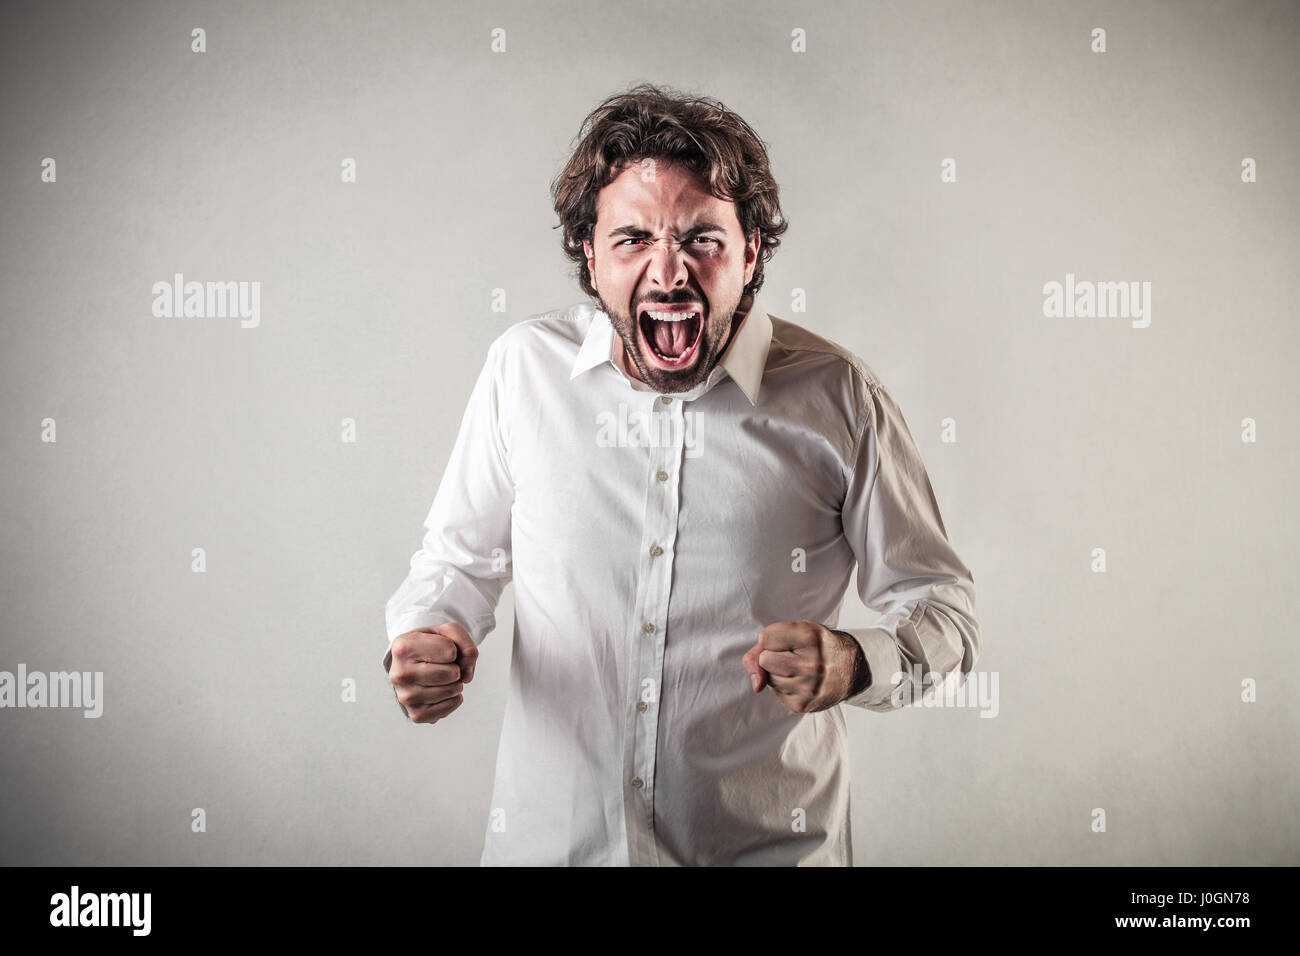 Businessman yelling in madness - Stock Image